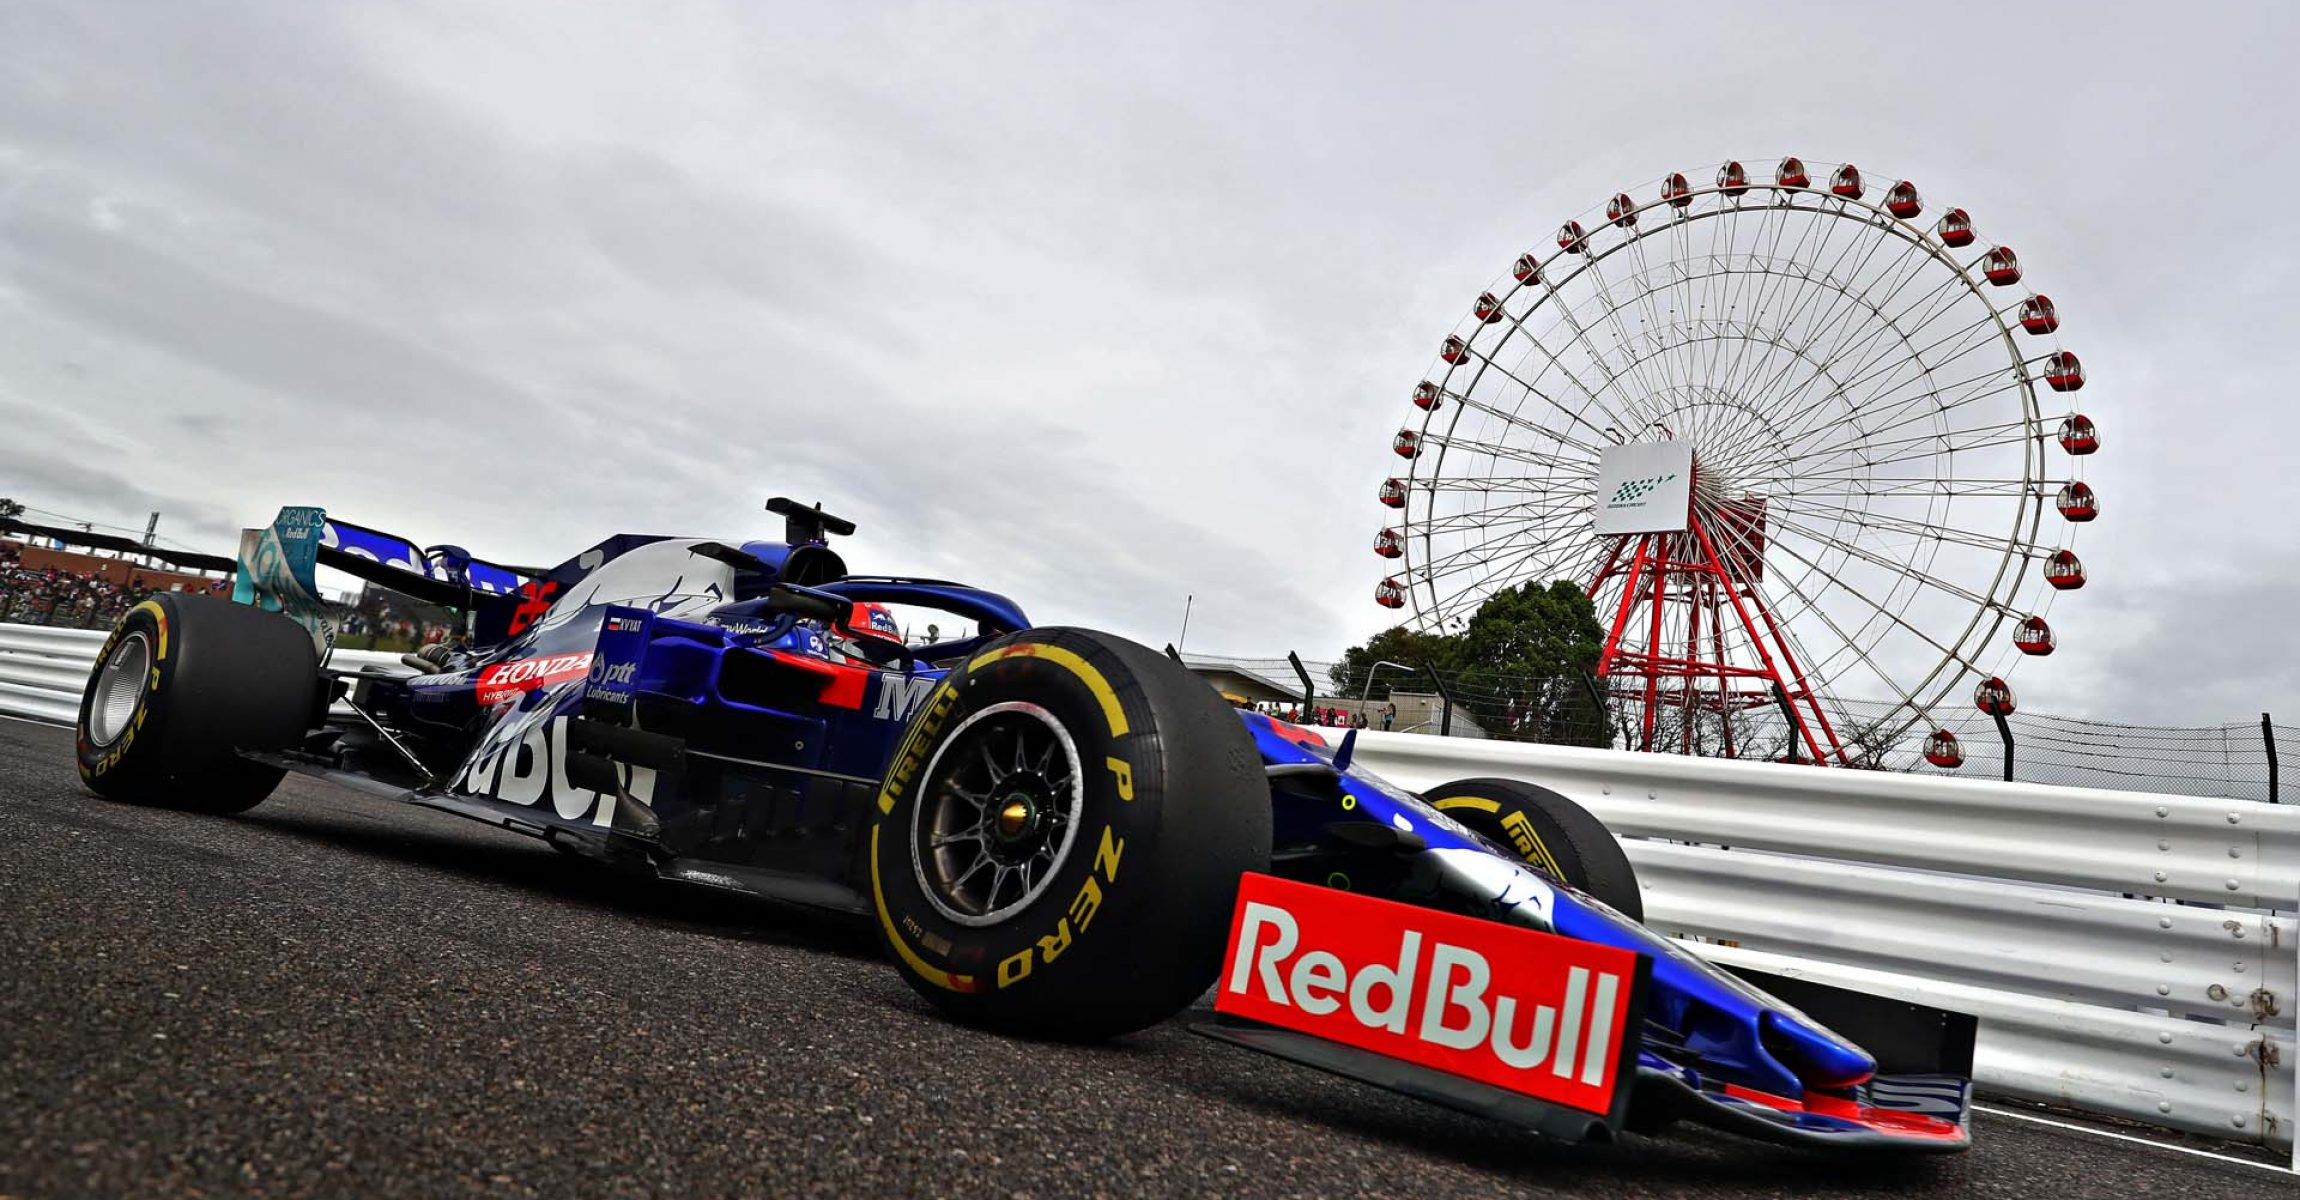 SUZUKA, JAPAN - OCTOBER 11: Daniil Kvyat driving the (26) Scuderia Toro Rosso STR14 Honda on track during practice for the F1 Grand Prix of Japan at Suzuka Circuit on October 11, 2019 in Suzuka, Japan. (Photo by Mark Thompson/Getty Images) // Getty Images / Red Bull Content Pool  // AP-21U9APAVH1W11 // Usage for editorial use only //